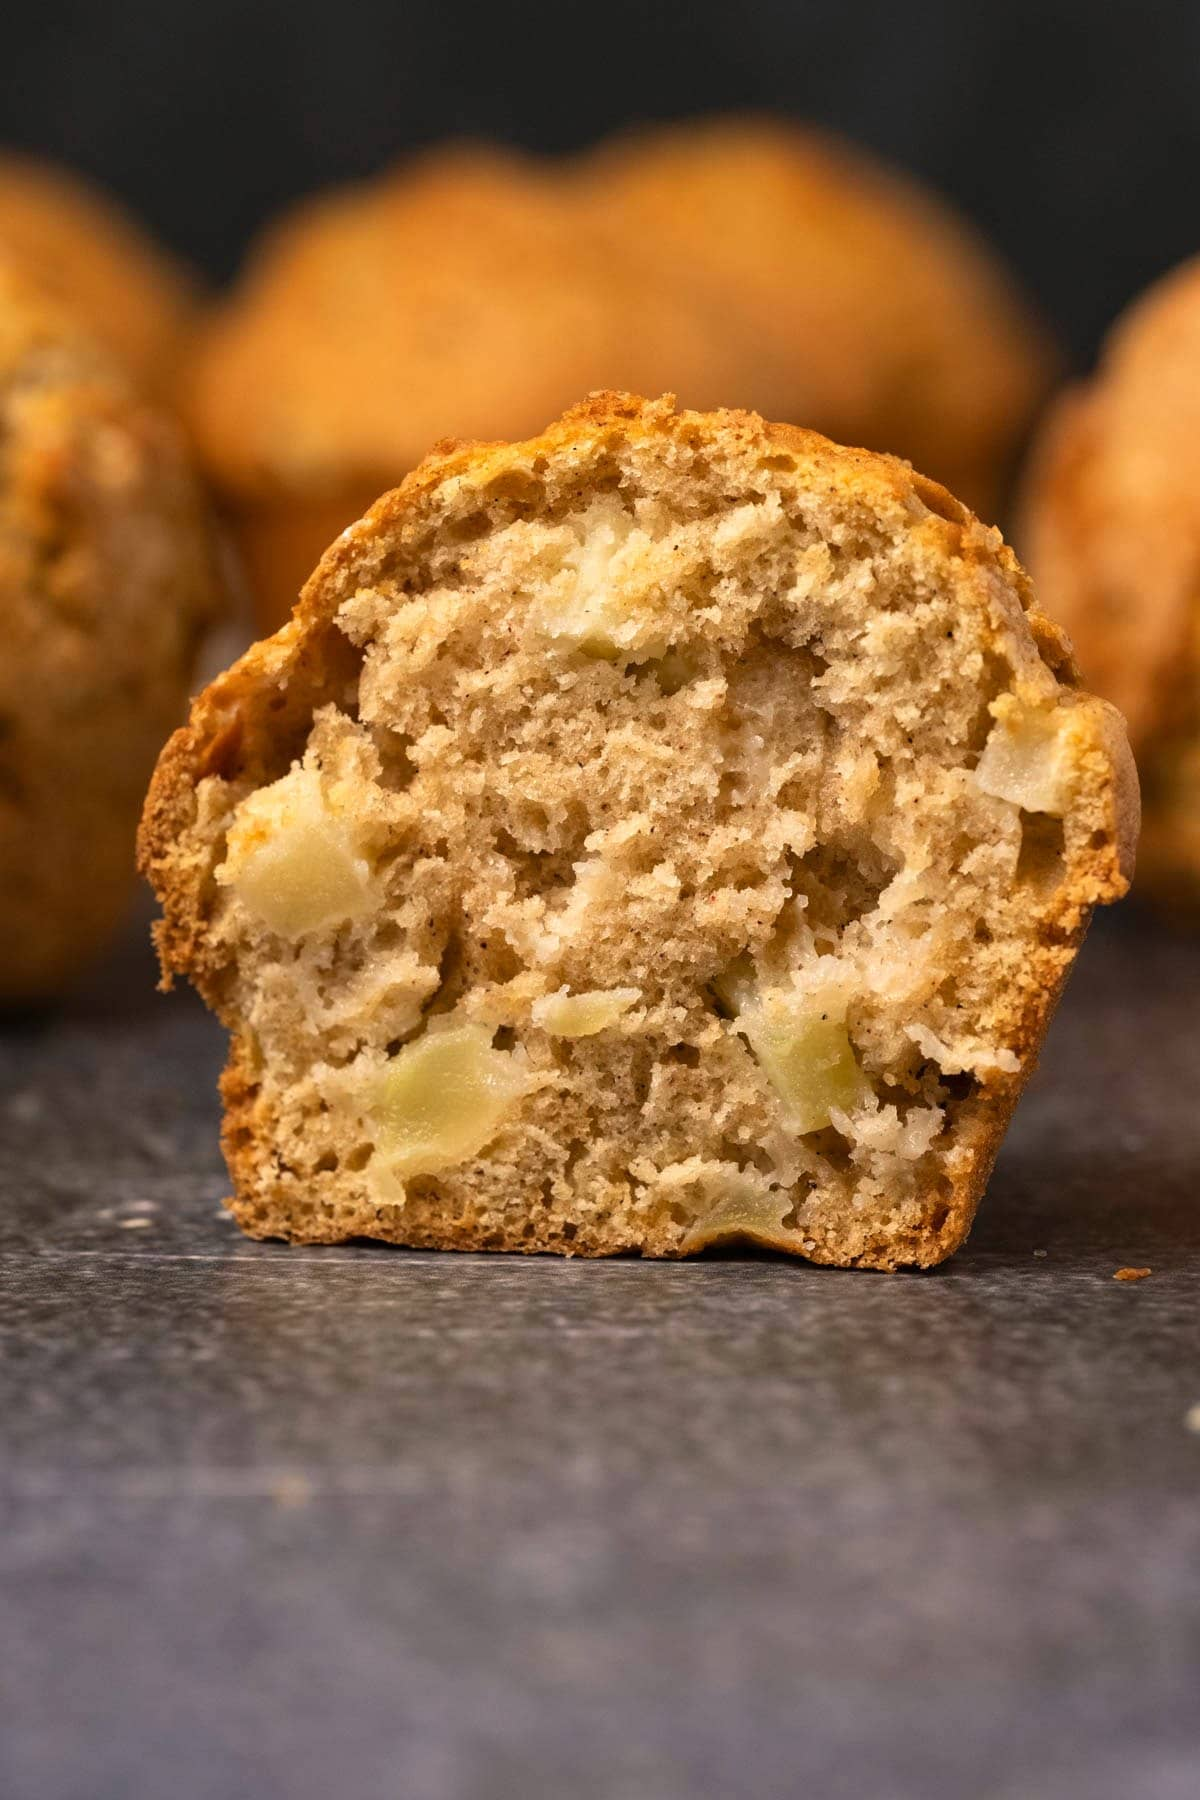 Apple muffins cut in half.